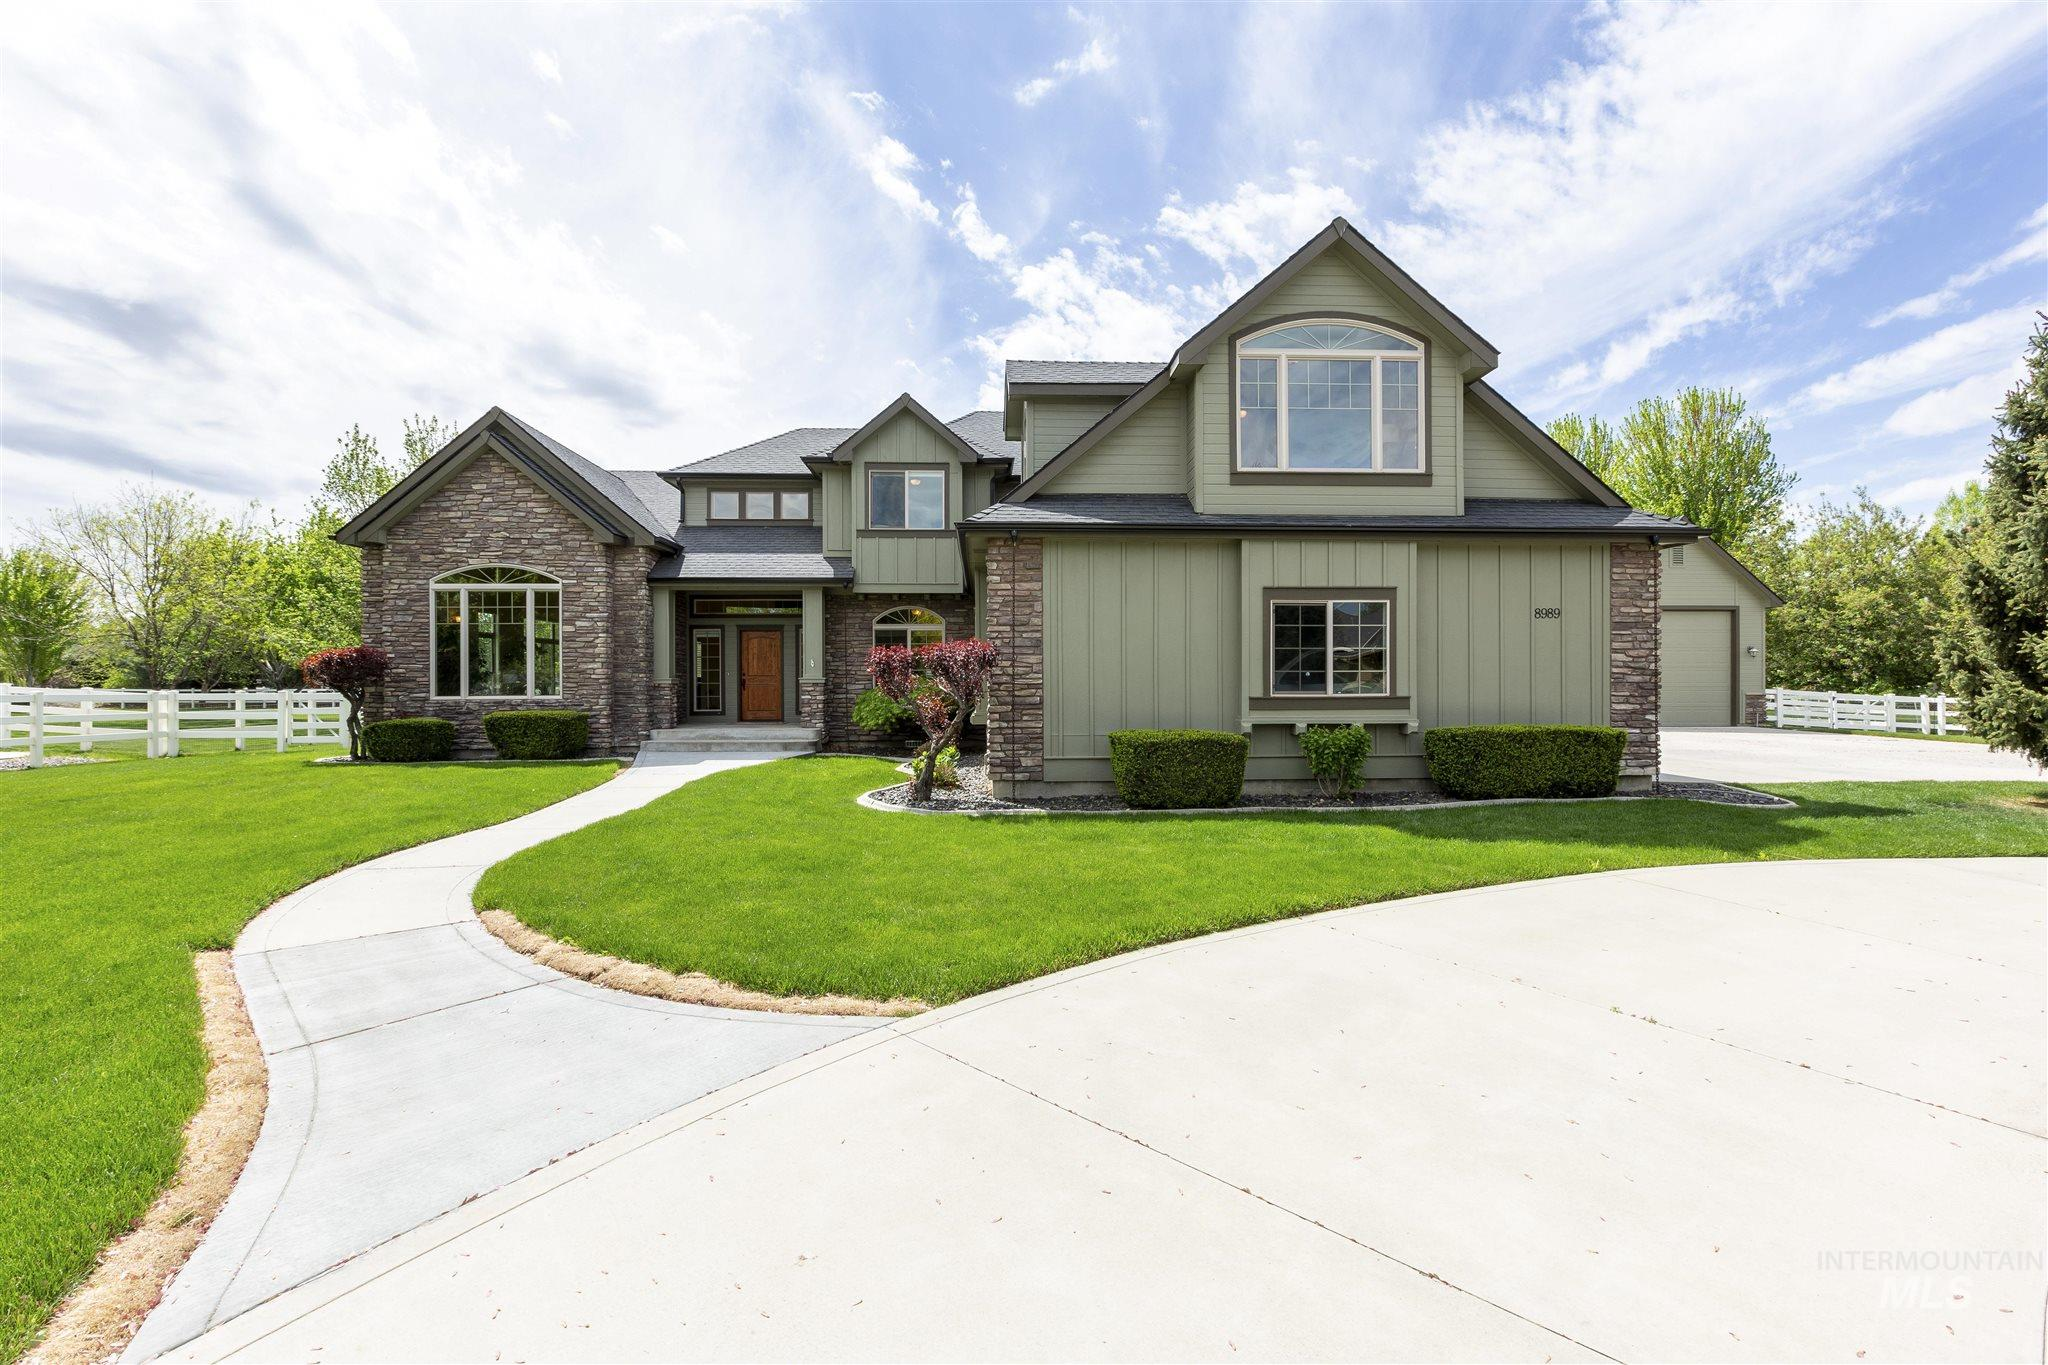 8989 New Castle Dr Property Photo - Middleton, ID real estate listing